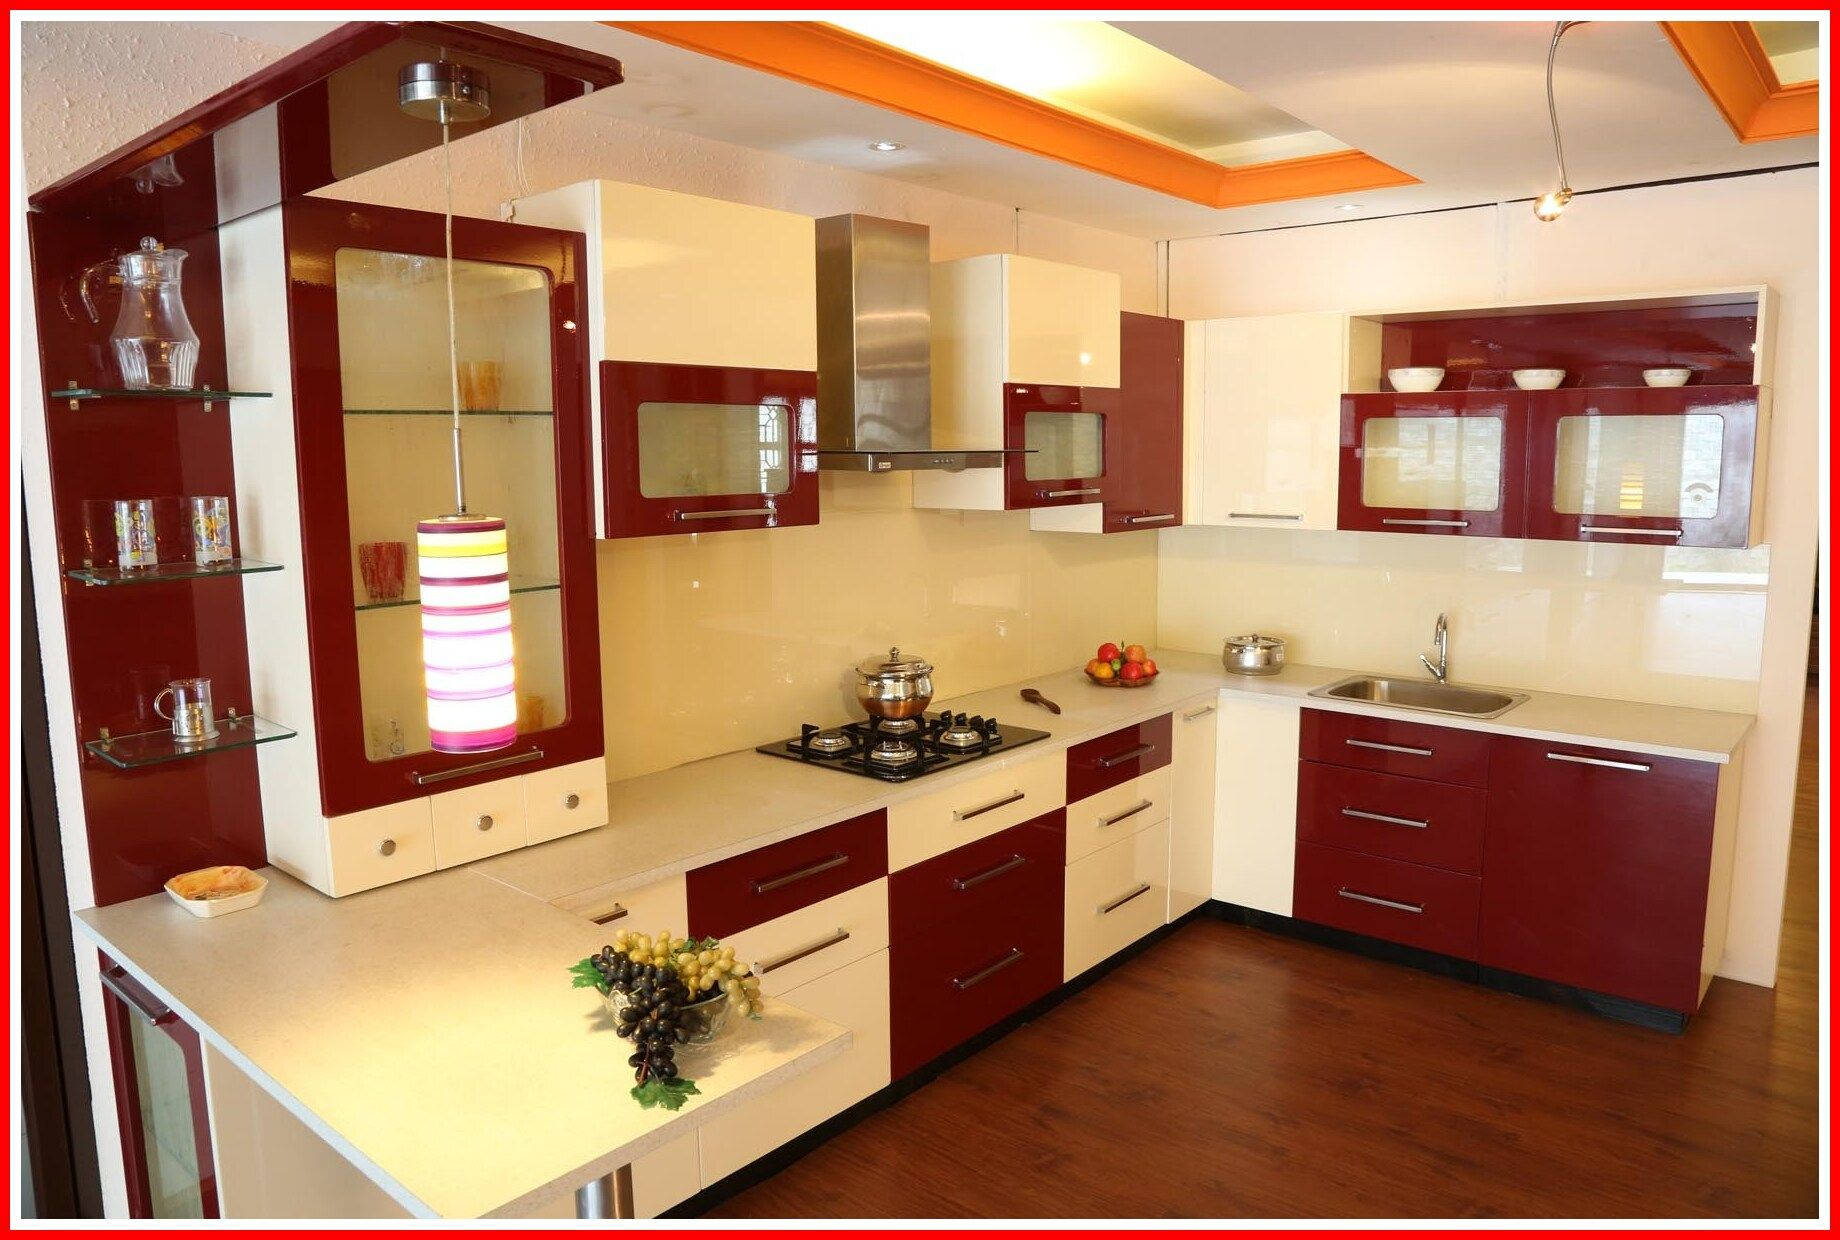 43 Reference Of Interior Design Ideas Indian Style Kitchen Small Kitchen Design Indian Style Modular Kitchen Indian Interior Design Kitchen